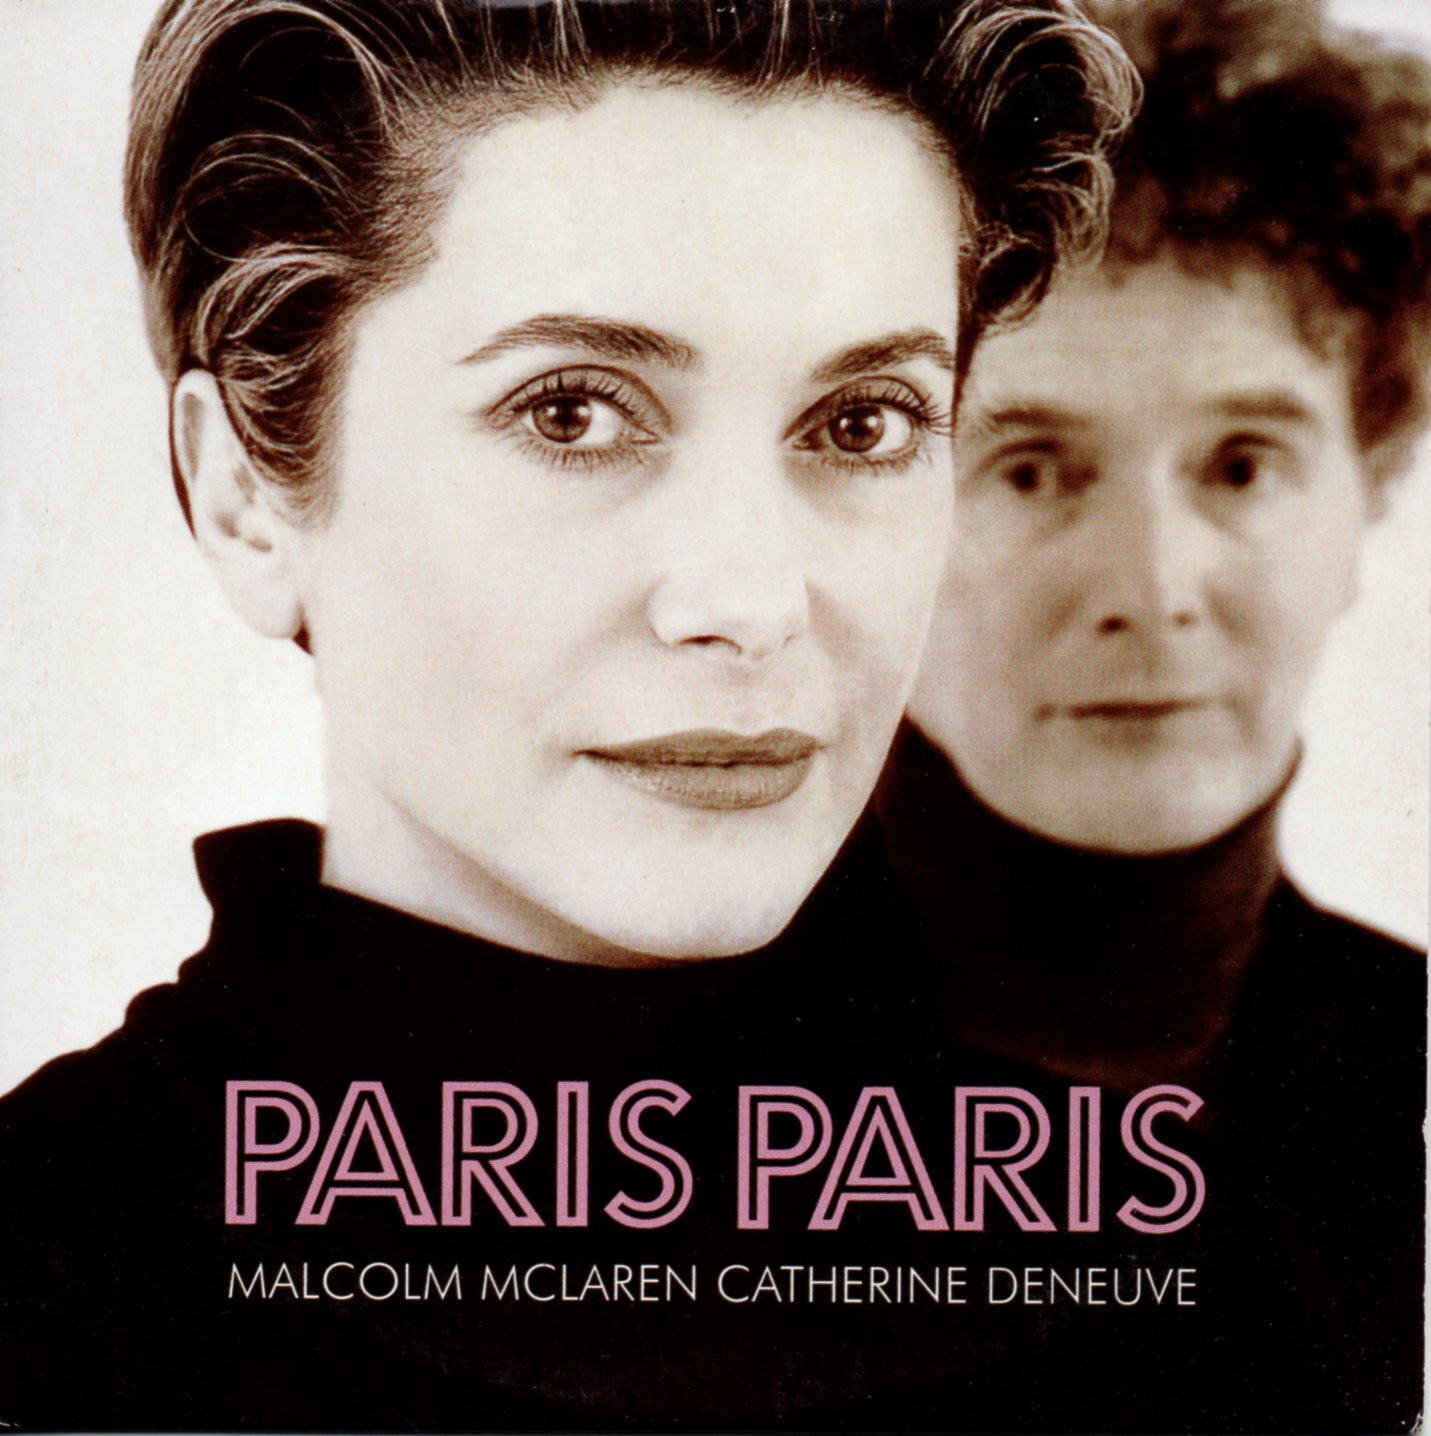 CATHERINE DENEUVE & MALCOLM MCLAREN - Paris Paris 2-Track CARD SLEEVE - CD single